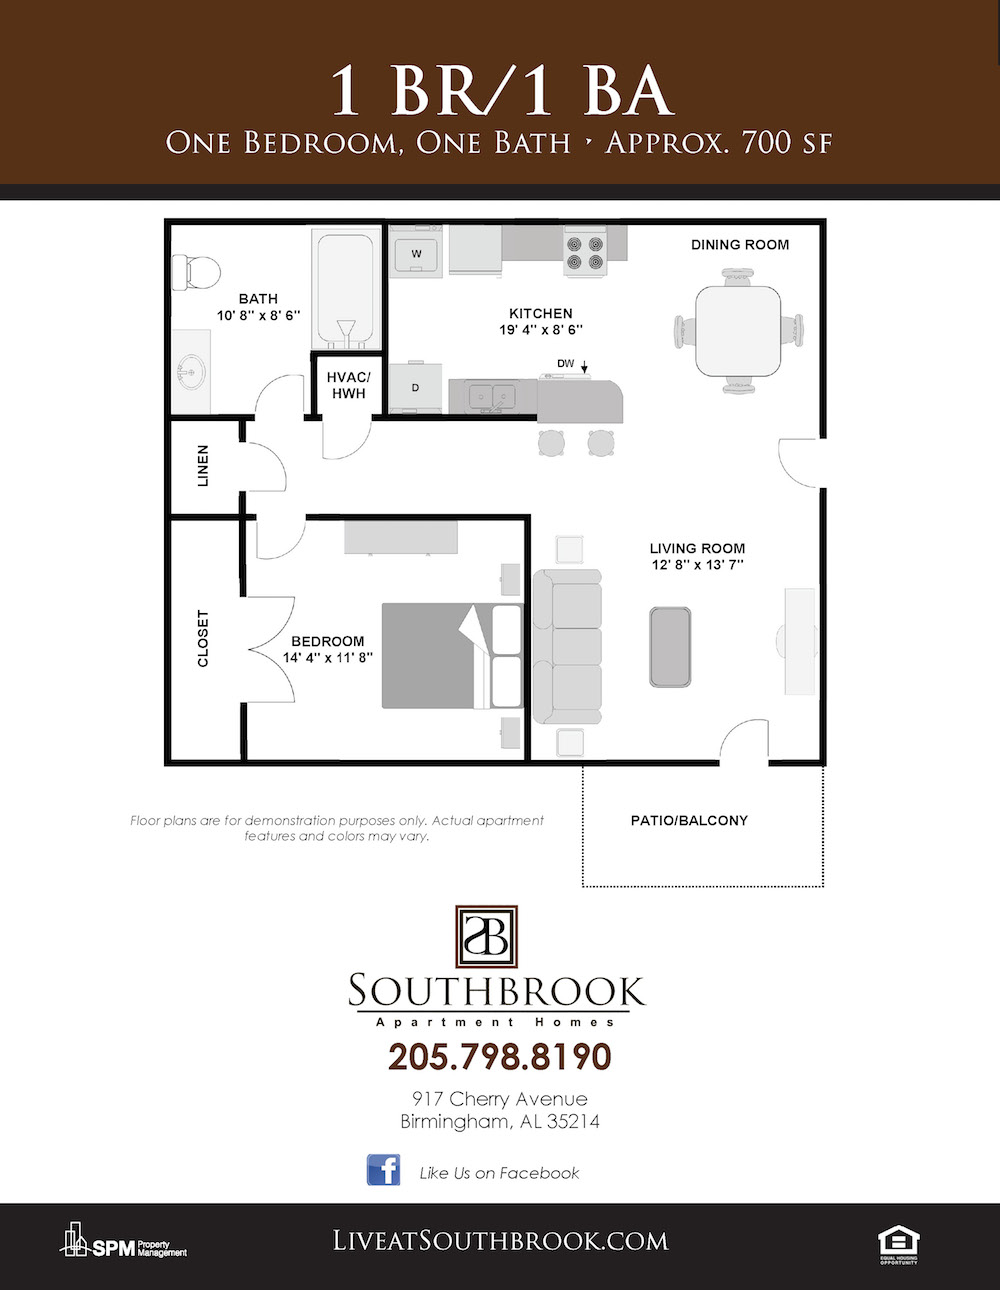 Southbrook apartments in birmingham alabama phase two construction of one bedroom one bathroom apartments